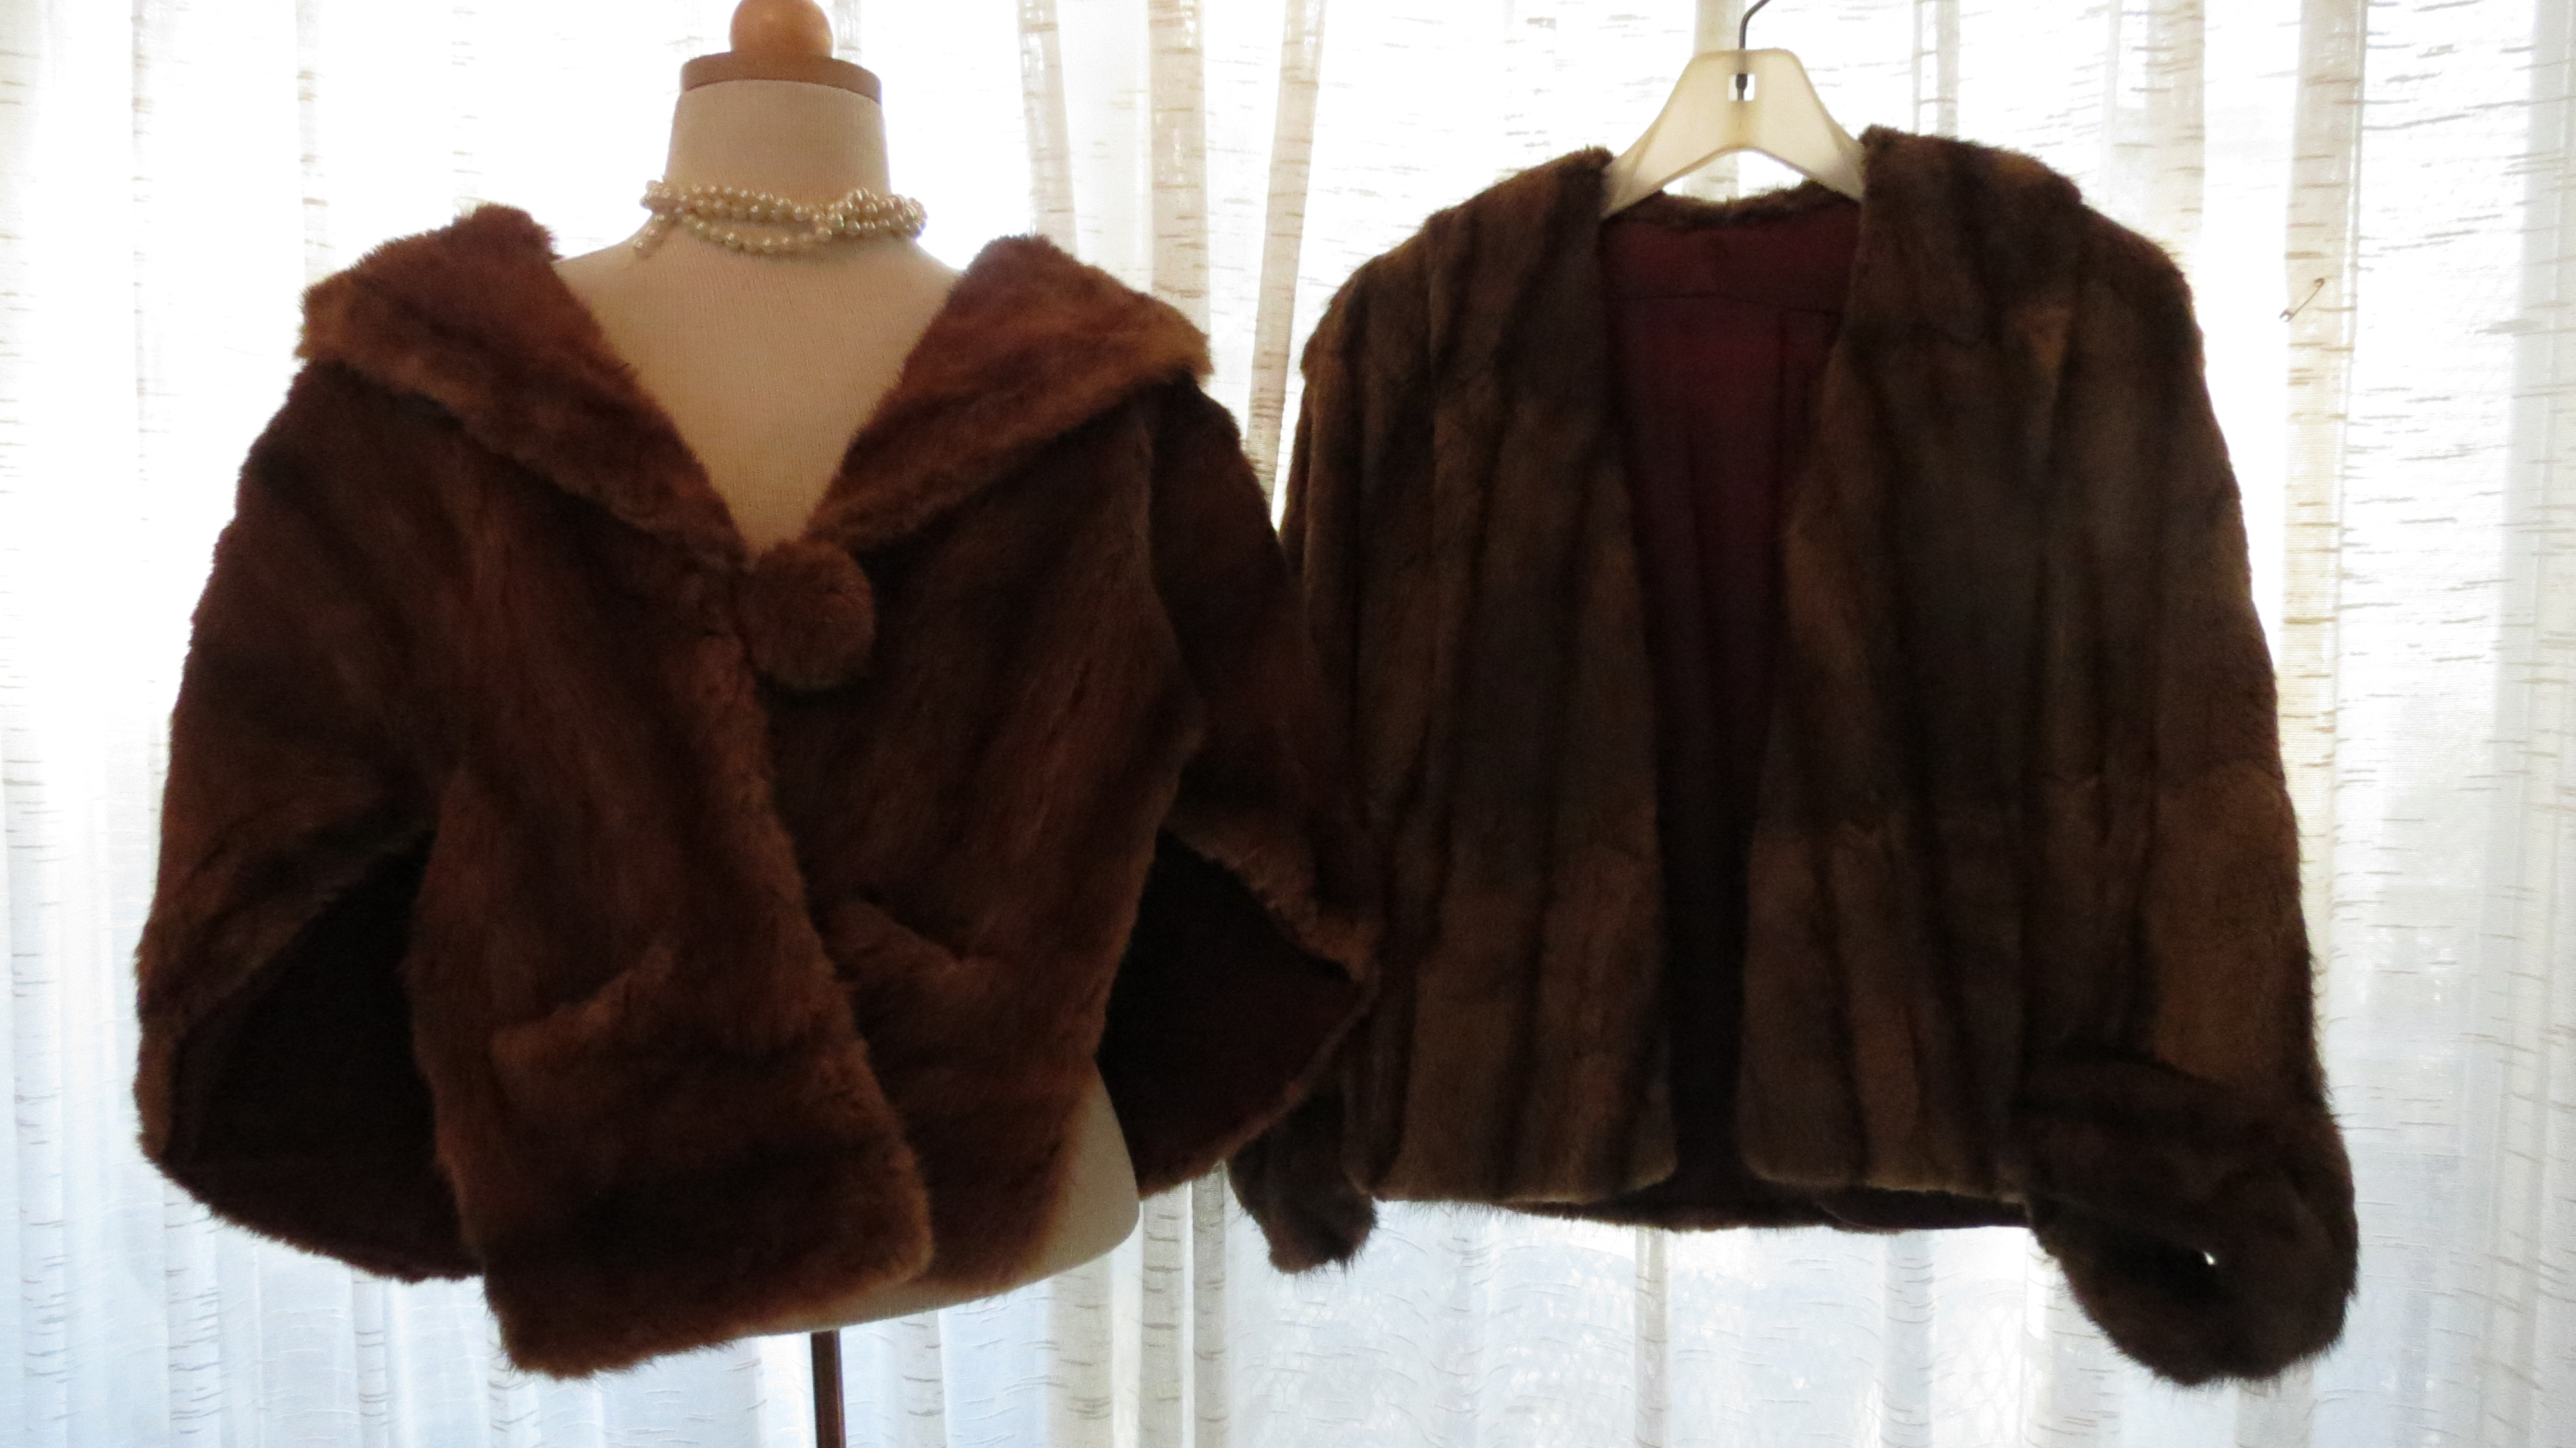 MAJOR GLAM IN TRUE VINTAGE FURS - STOLE/CAPE AND JACKET FROM THE 1940'S / 1950'S